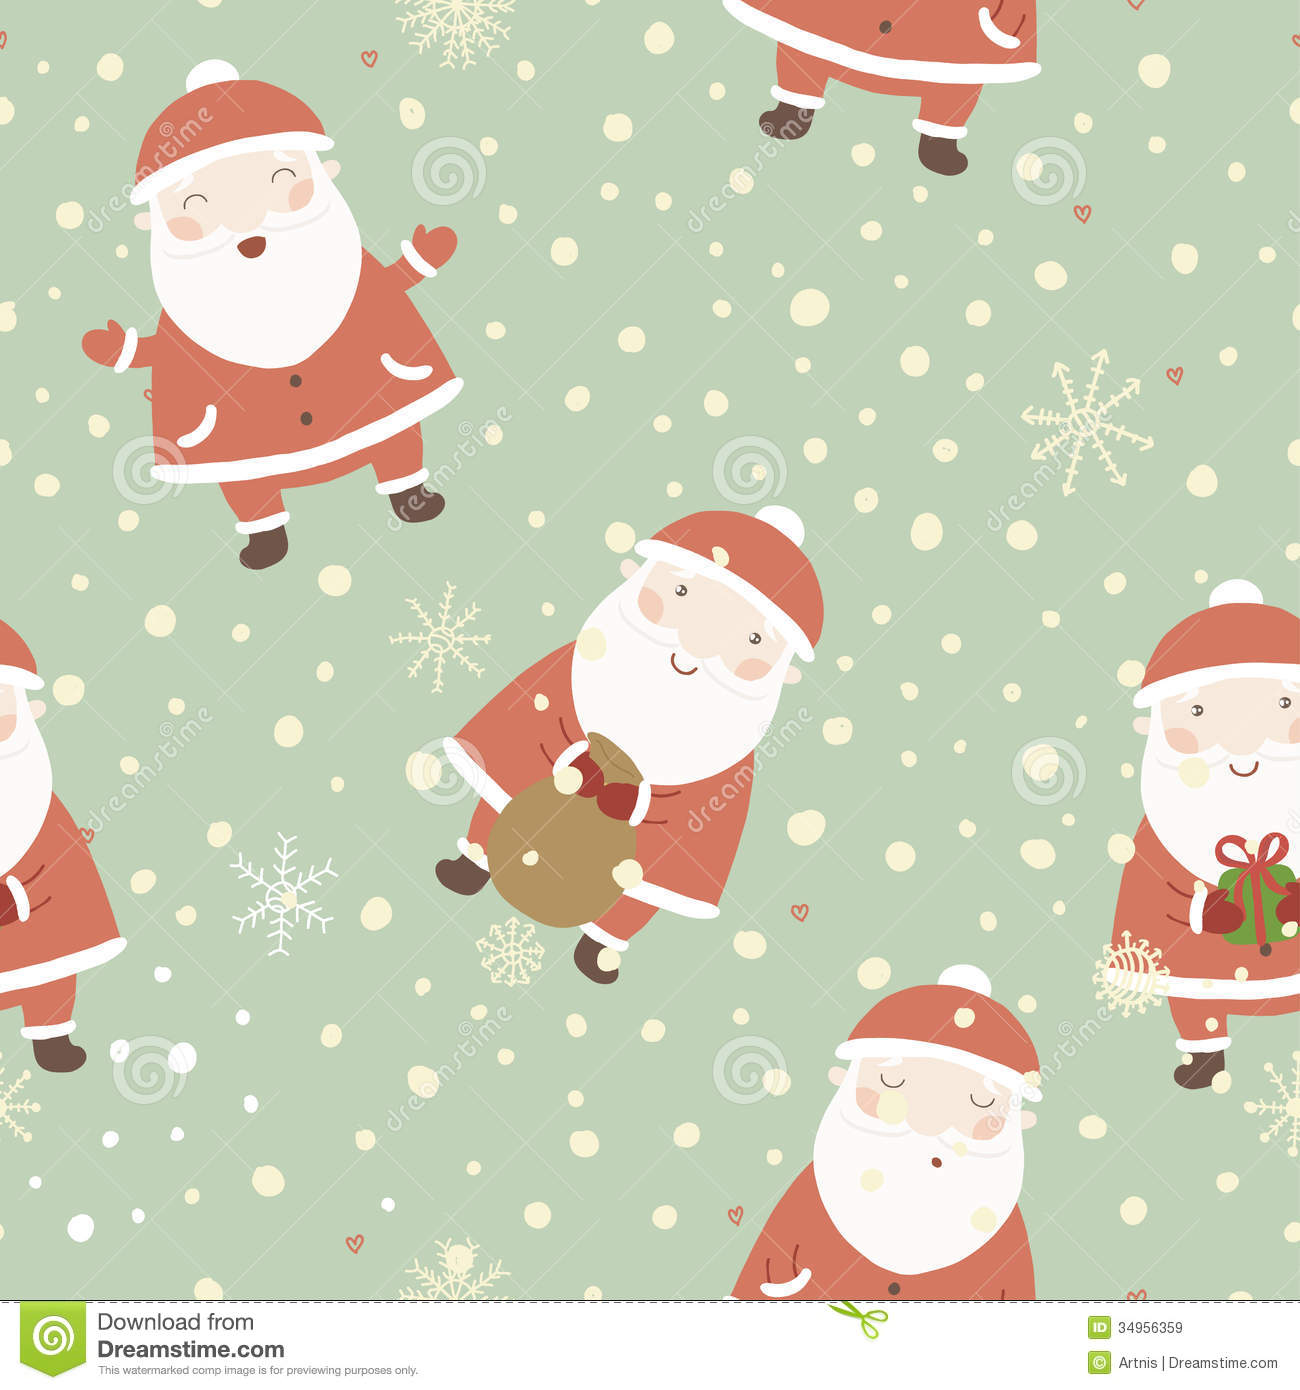 Christmas Backgrounds Cute.Christmas Background With Cute Santa Stock Vector